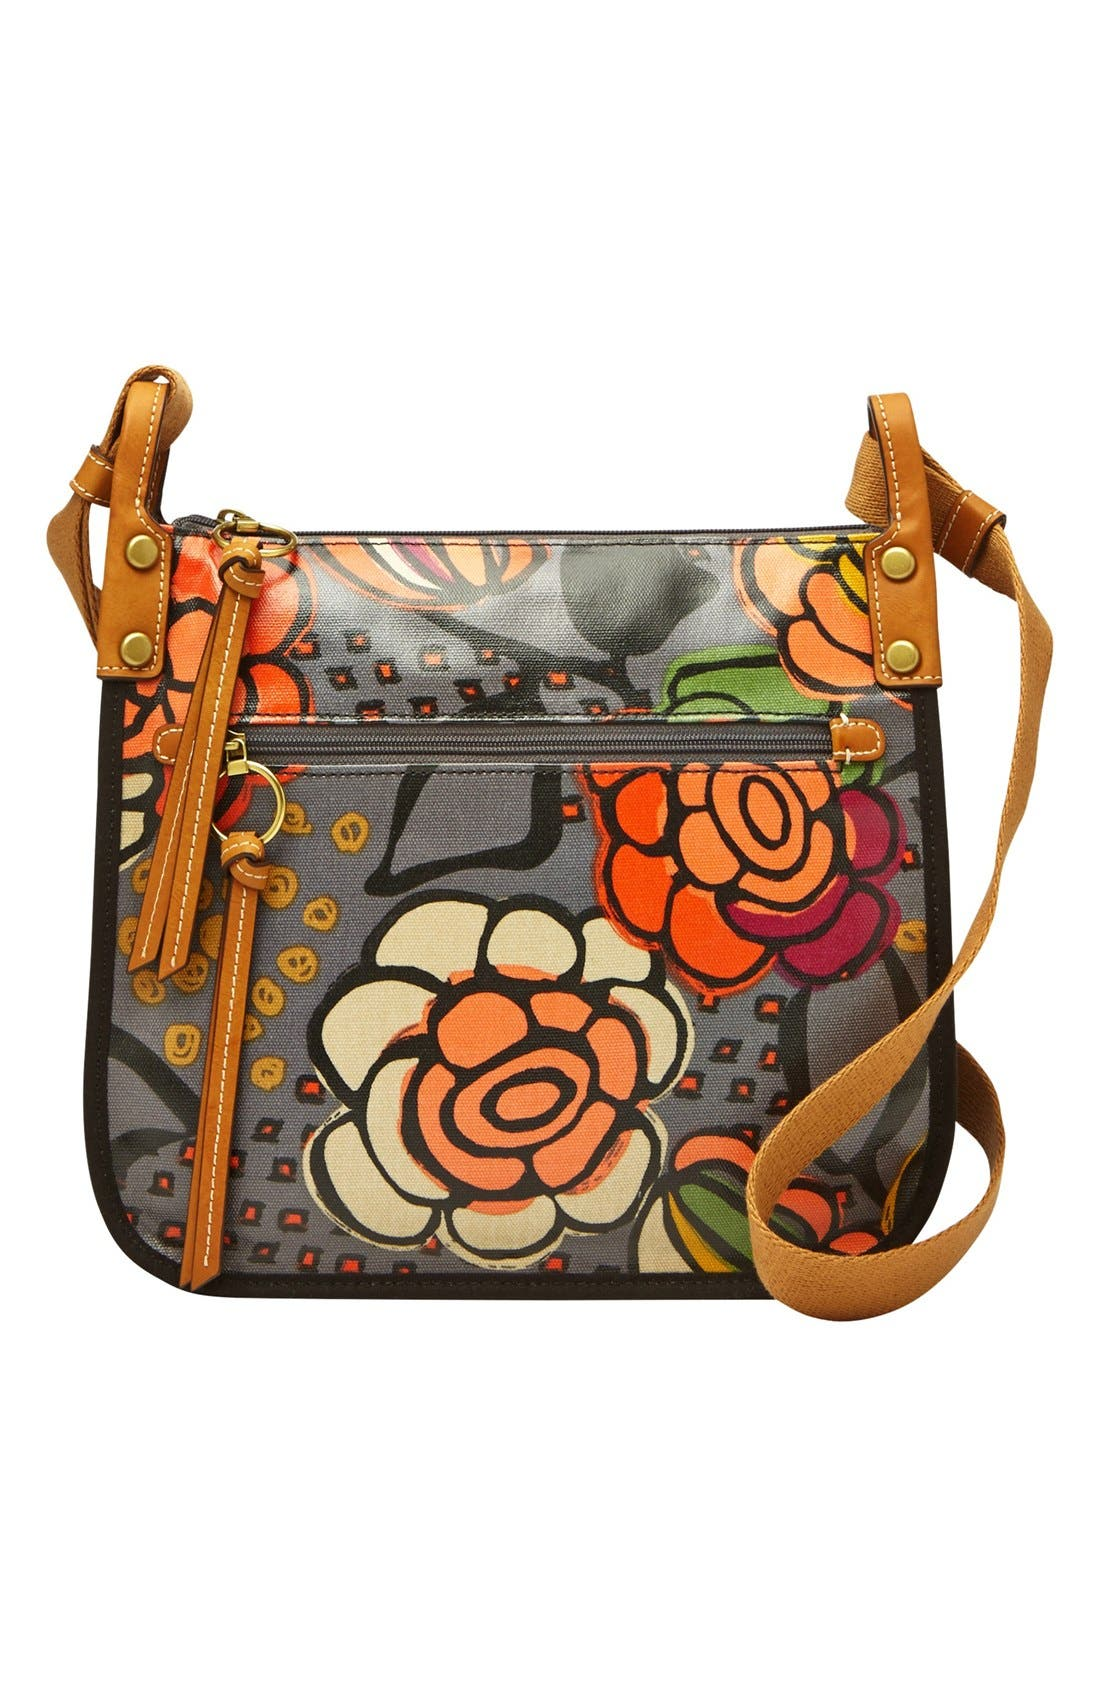 Alternate Image 1 Selected - Fossil 'Key-Per' Print Coated Canvas Crossbody Bag